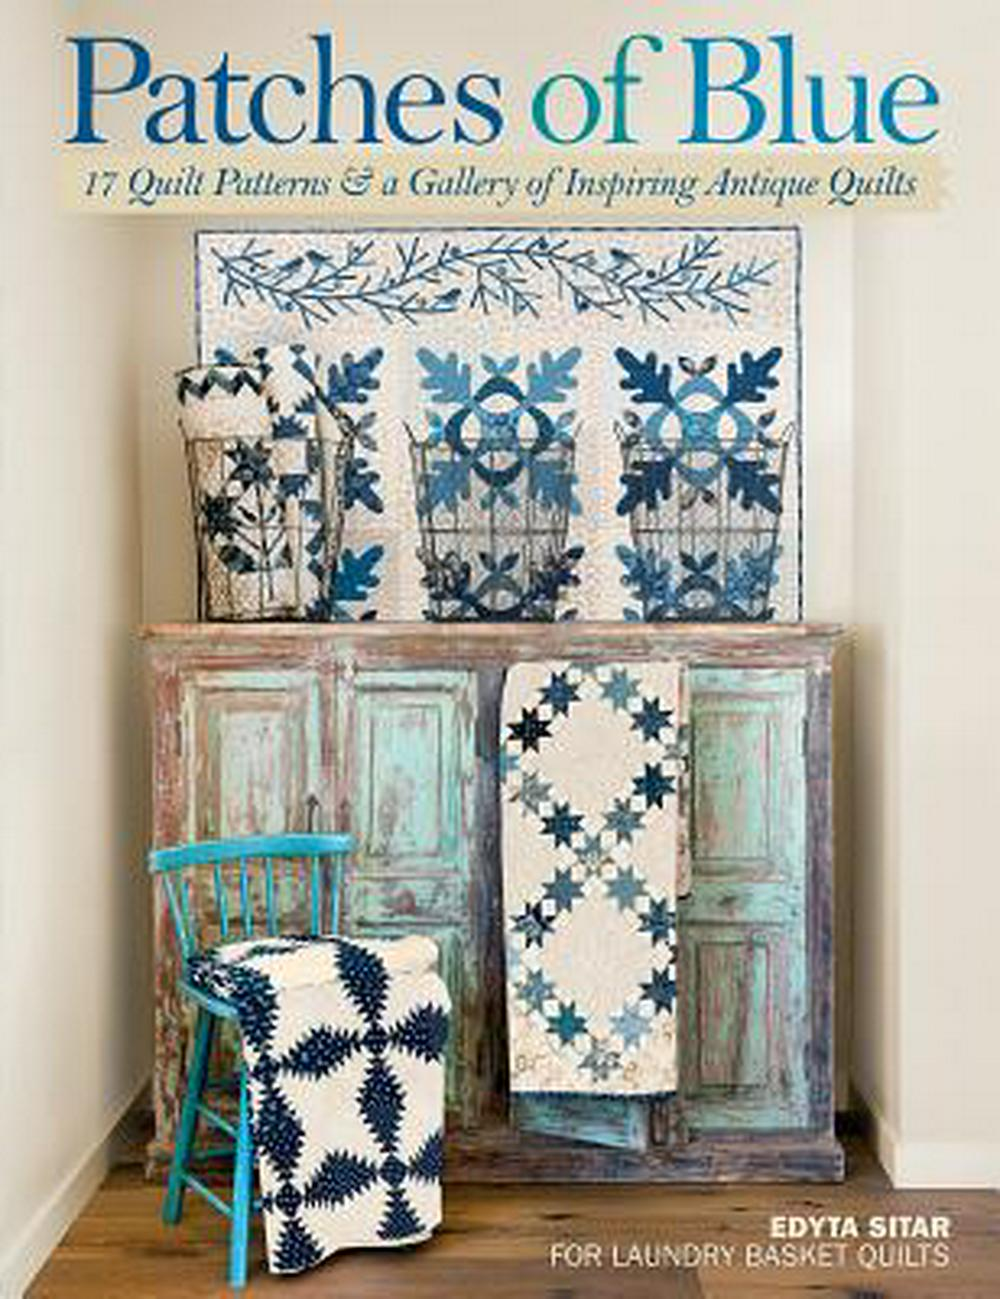 Patches of Blue: 17 Quilt Patterns & a Gallery of Inspiring Antique Quilts